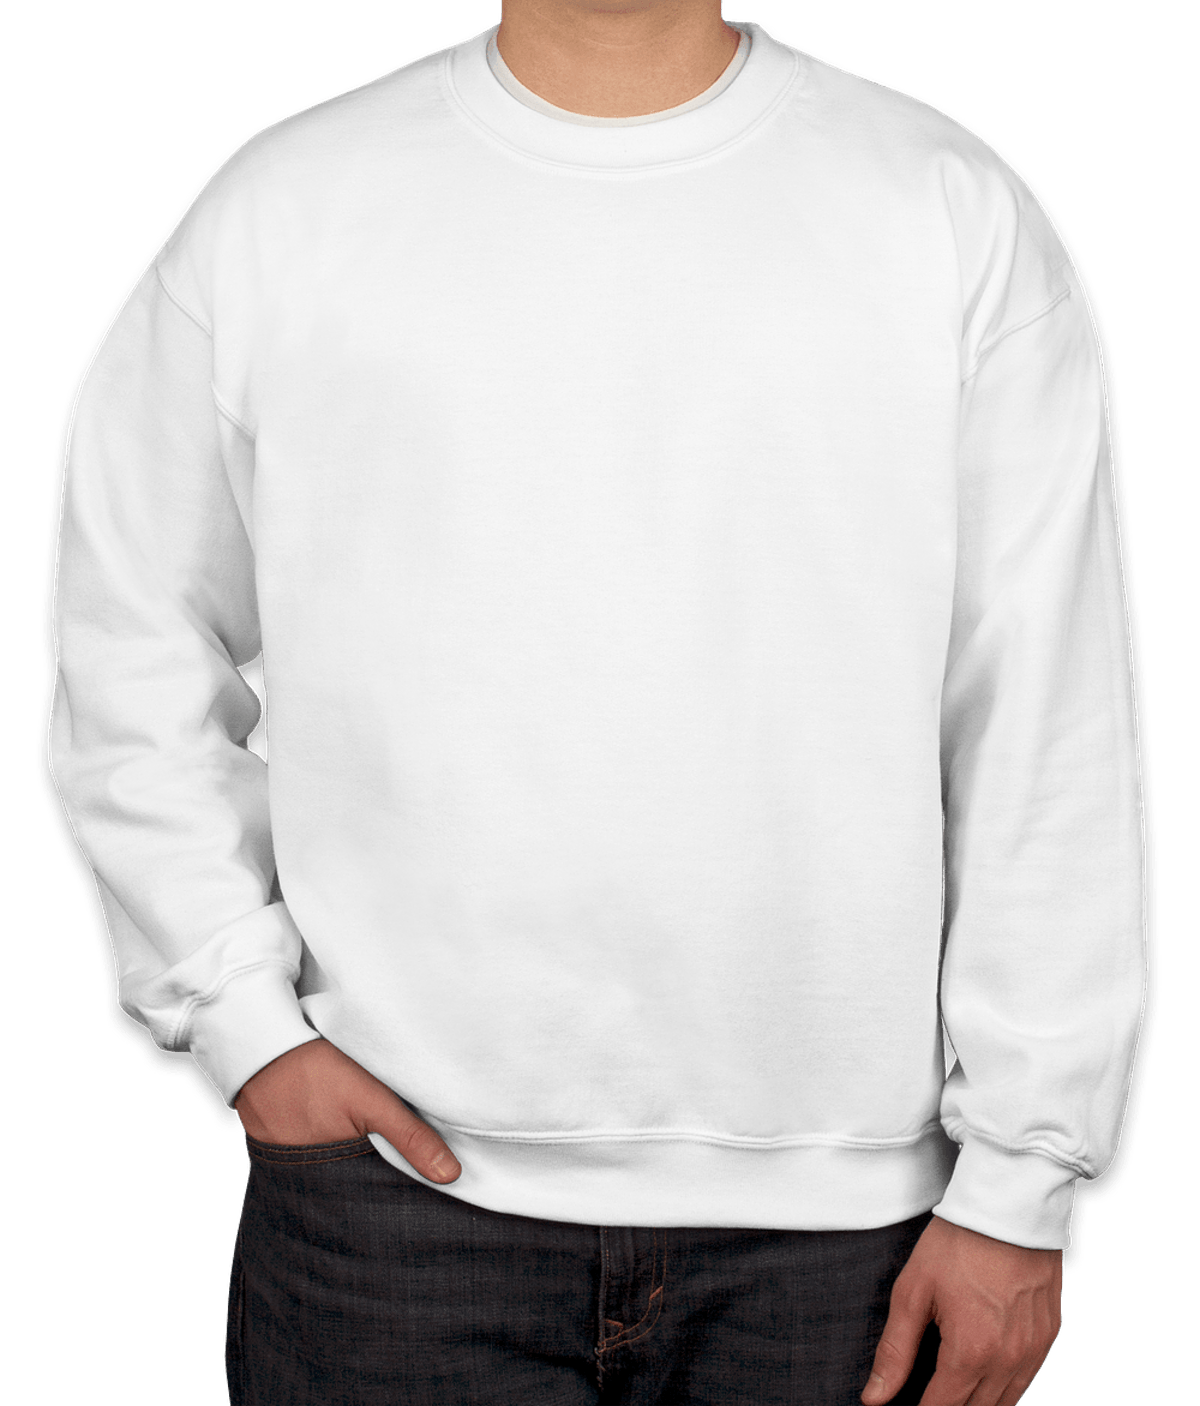 Youth Gildan Midweight 50/50 Crewneck Sweatshirt